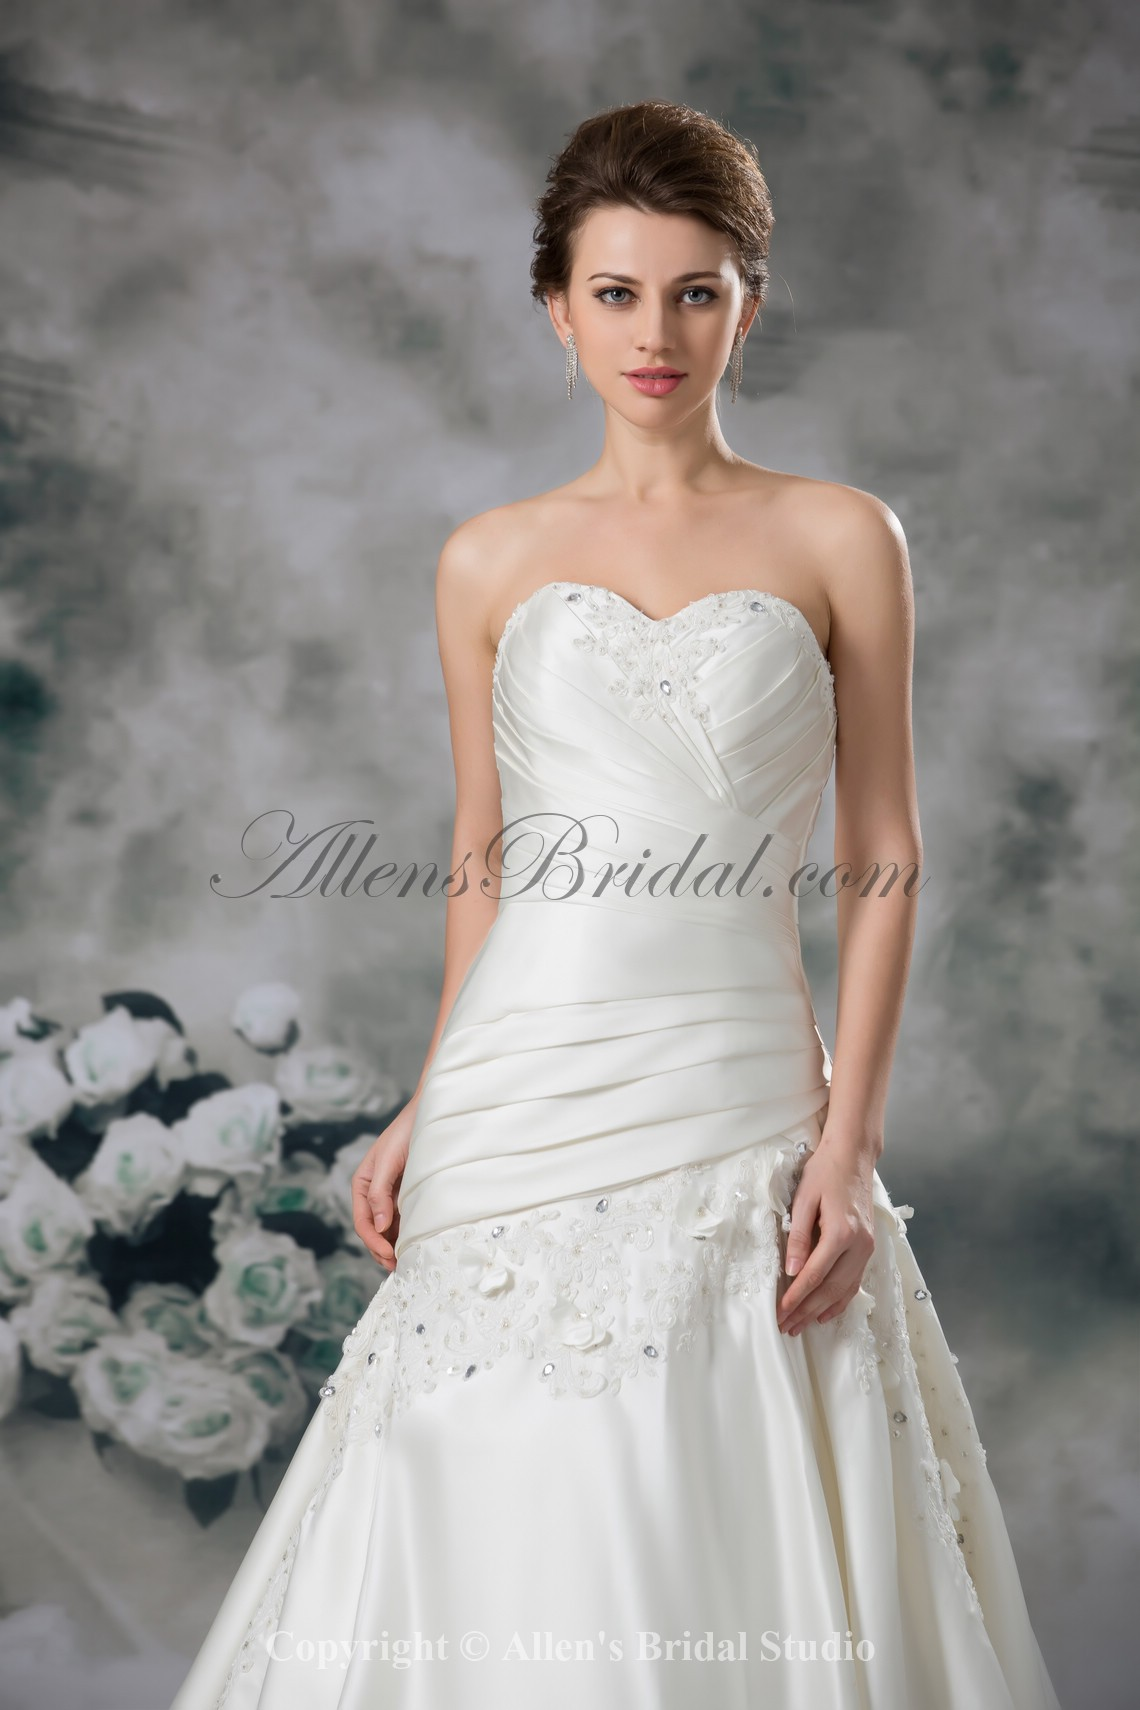 /968-7758/satin-sweetheart-neckline-sweep-train-a-line-embroidered-wedding-dress.jpg